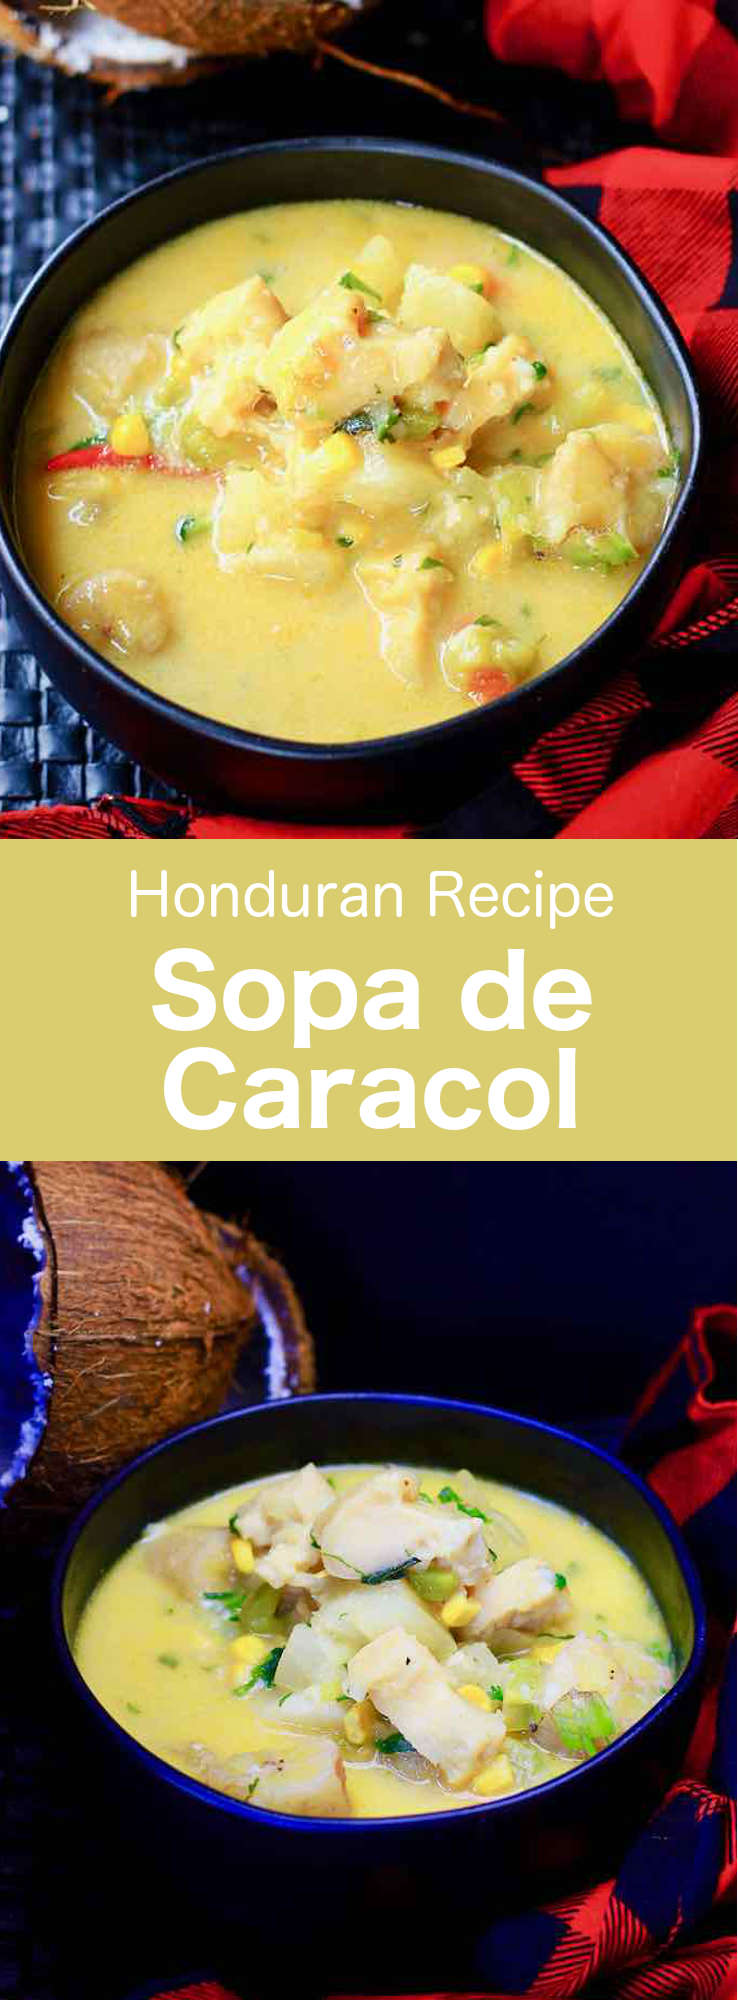 Sopa de caracol is a traditional conch soup from Honduras. Various versions of this delicious seafood soup are also popular throughout Latin America and the Caribbean. #Honduras #HondurasFood #HondurasRecipe #HonduranRecipe #HondurasCuisine #WorldCuisine #196flavors